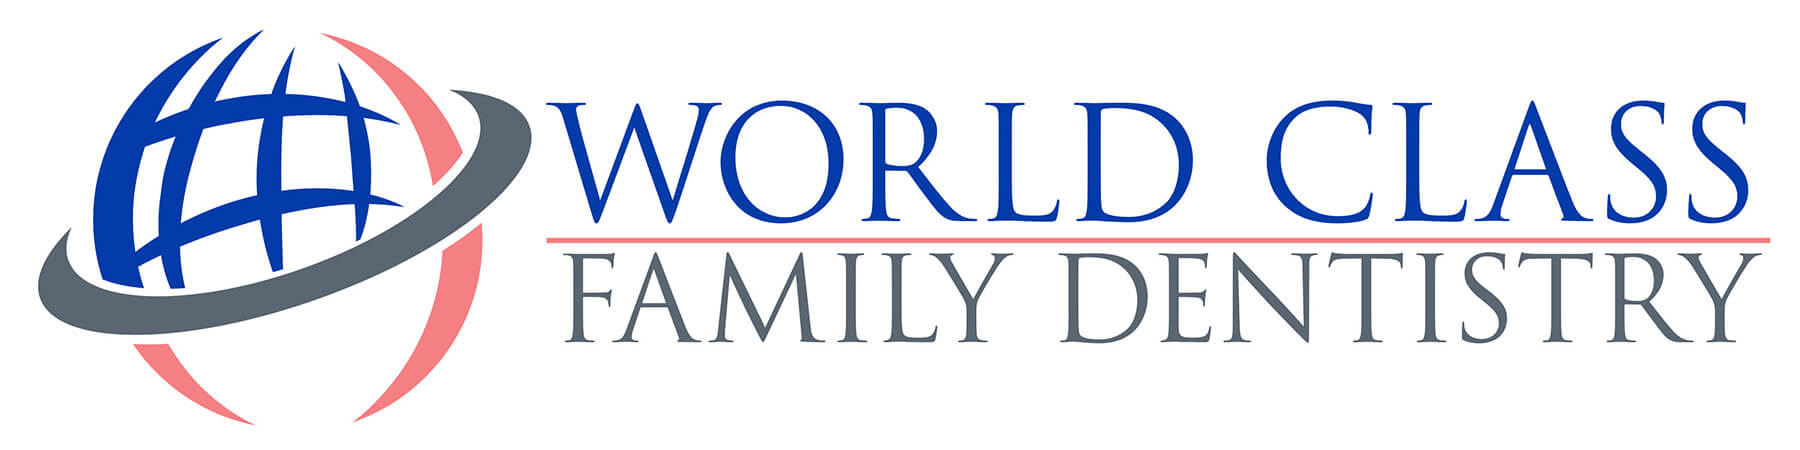 World Class Family Dentistry of Allentown, PA